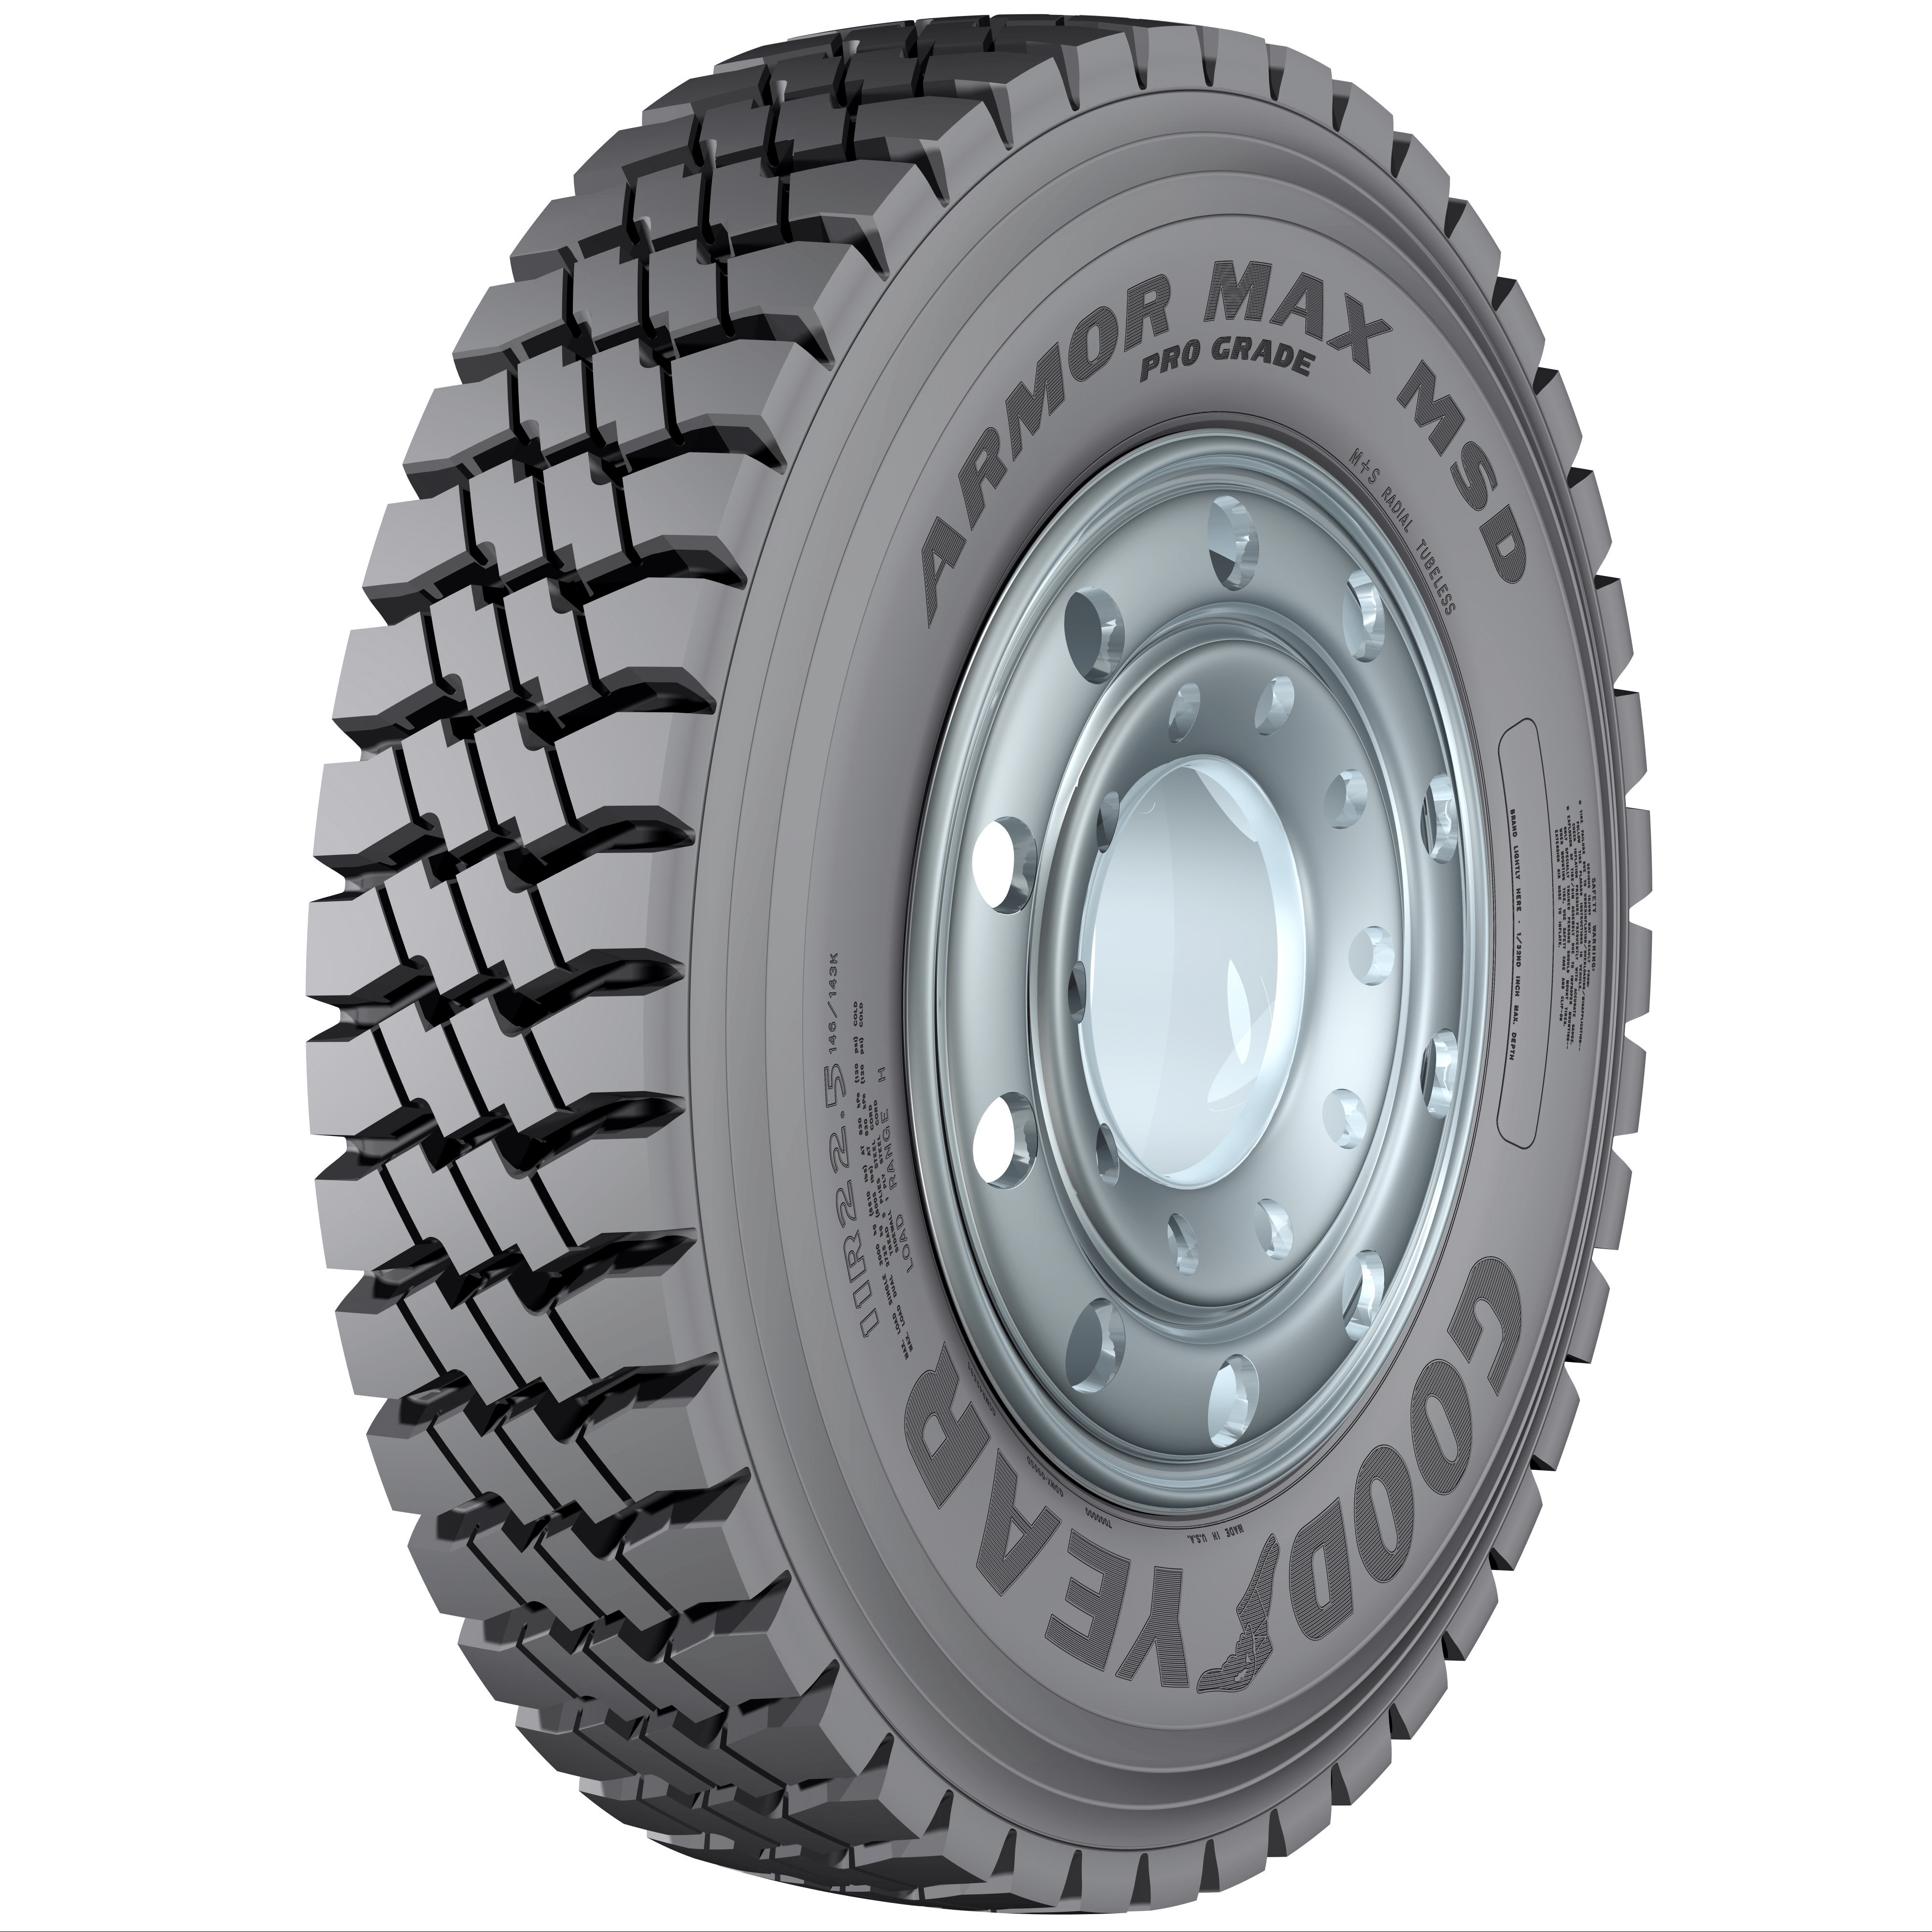 Goodyear S Armor Max Pro Grade Msd Tire Overdrive